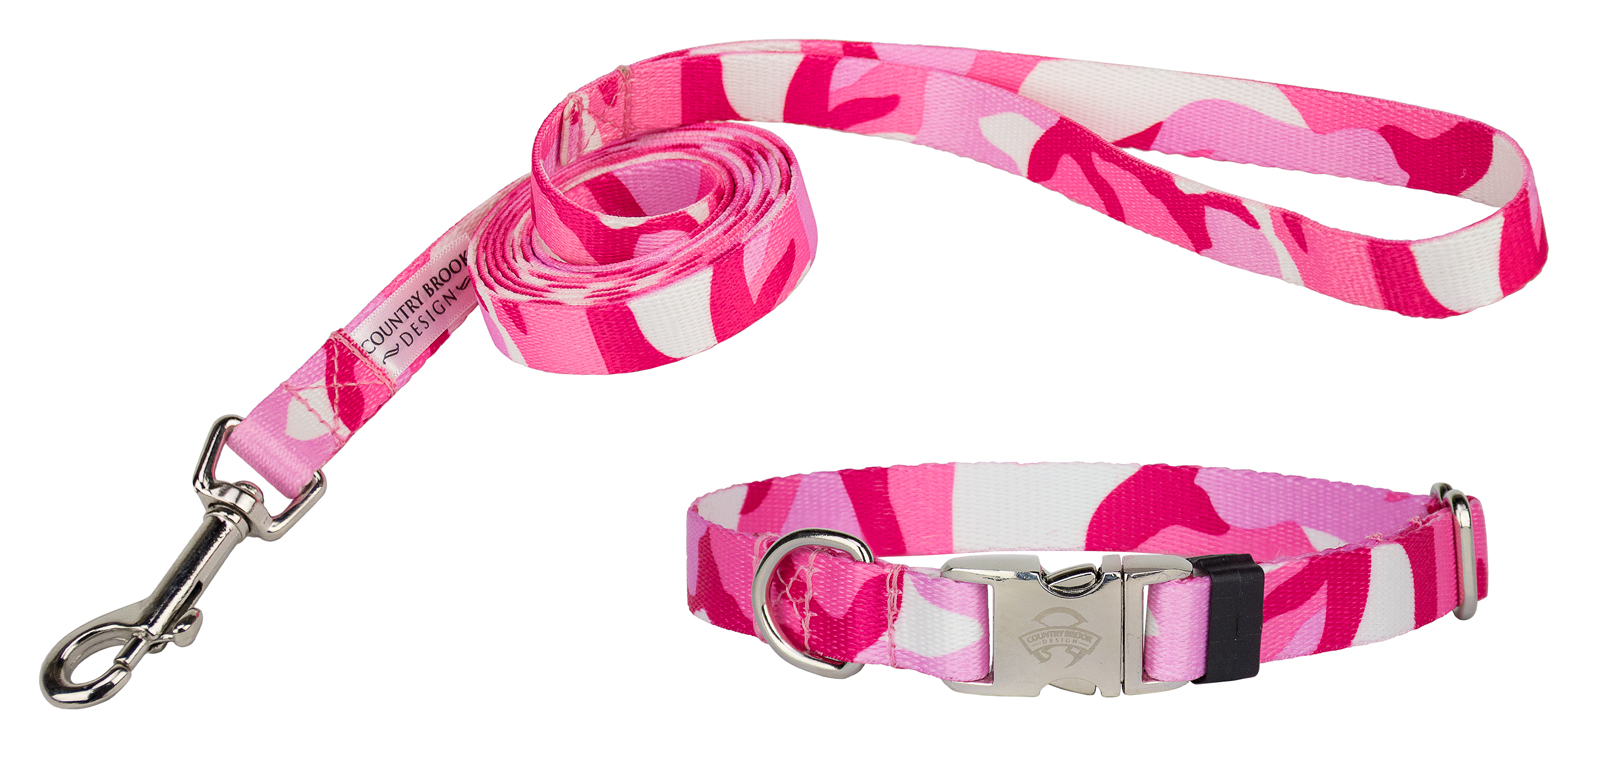 Dog Leash And Collar All In One